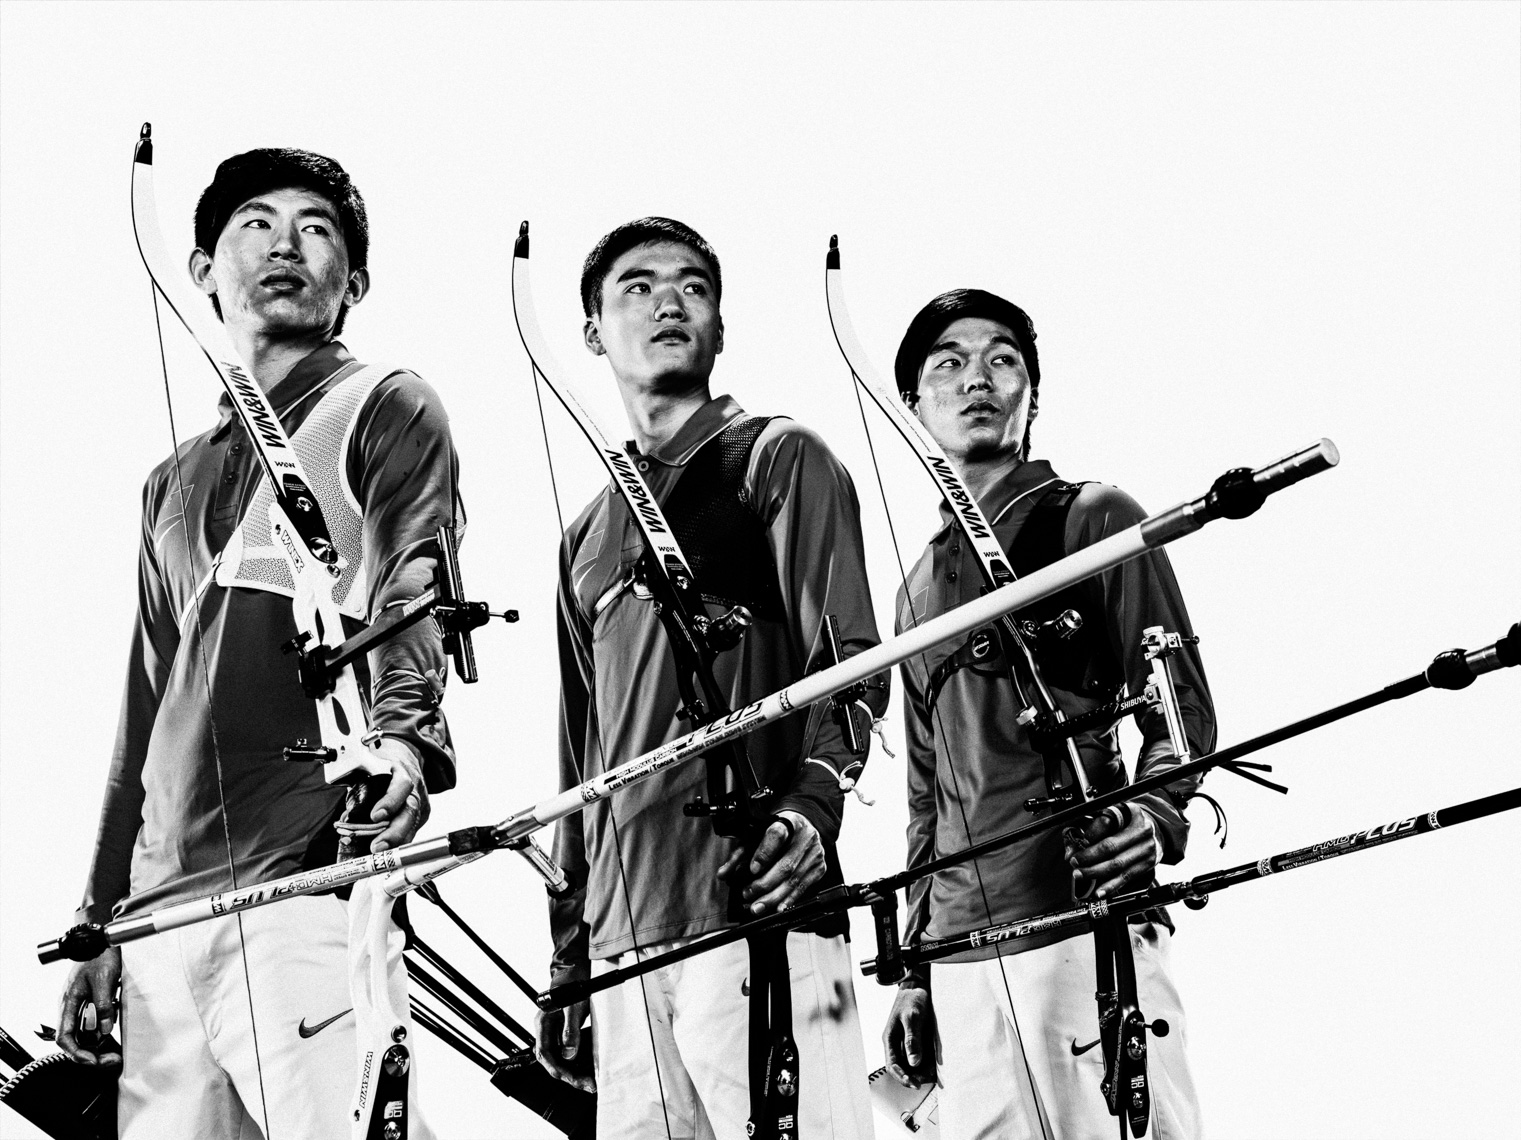 35-NIKE_CHINA_ARCHERY_TEAM_011